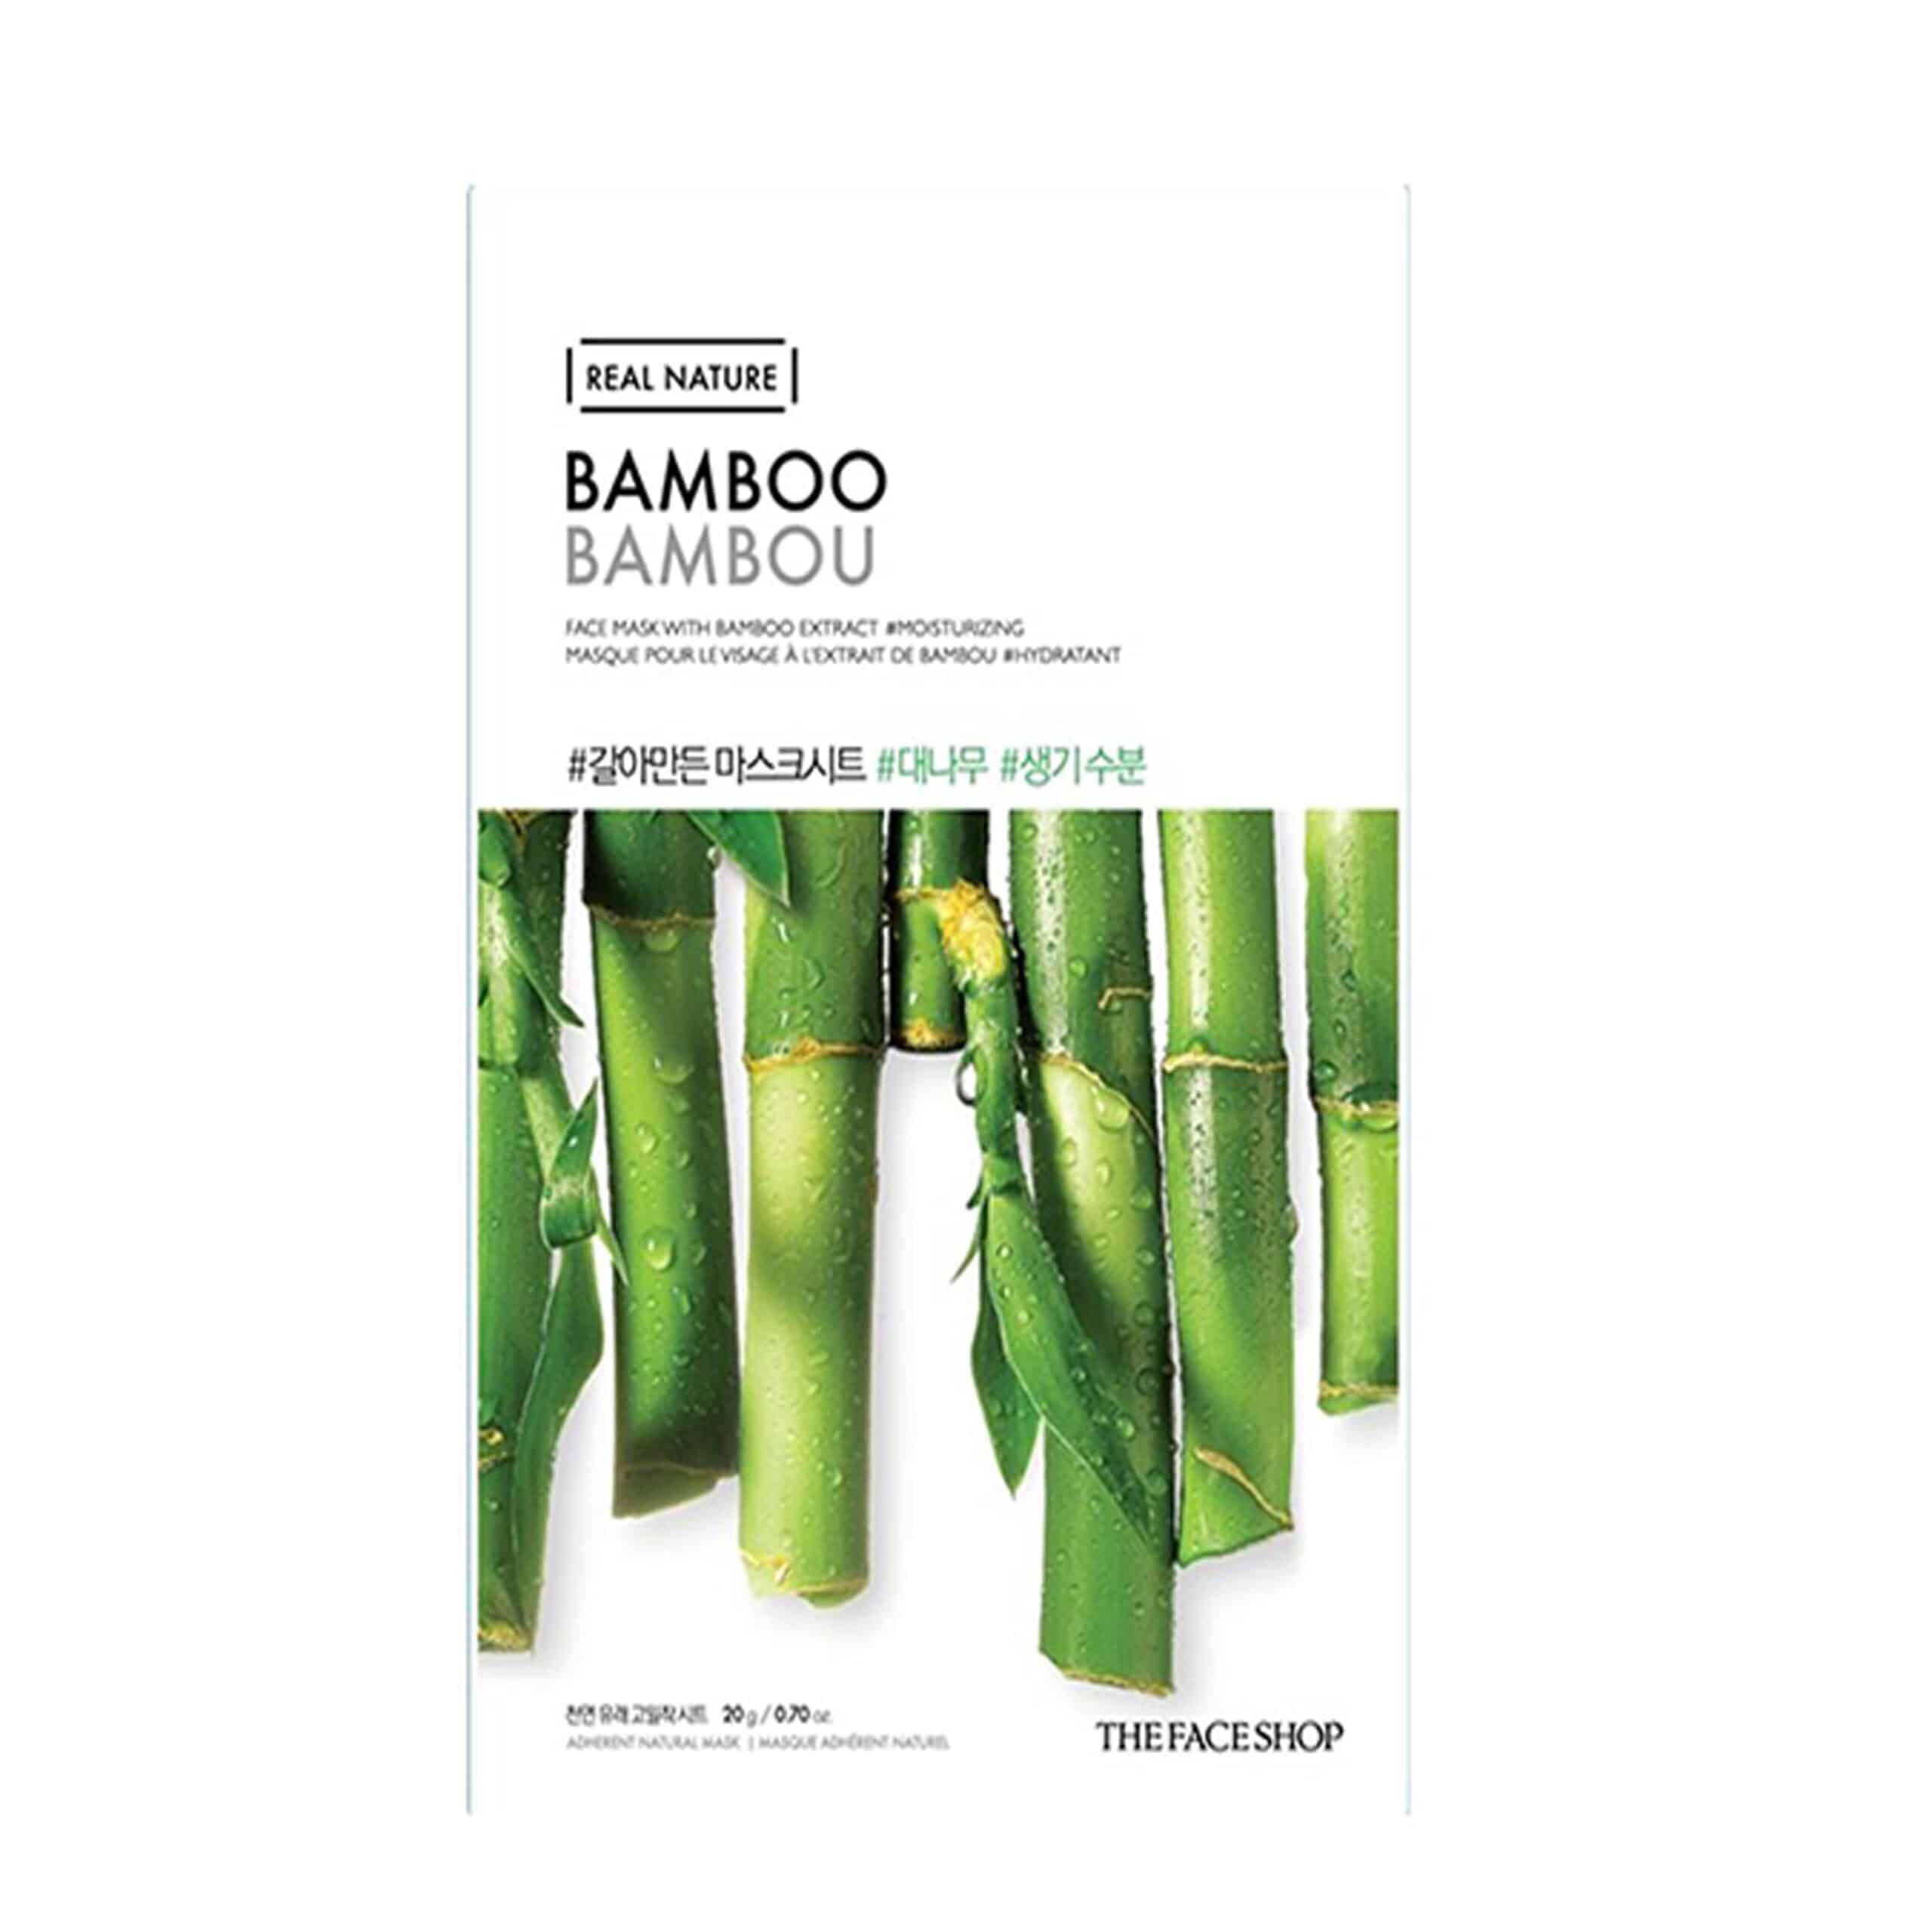 The-Face-Shop-Real-Nature-Bamboo-Face-Mask